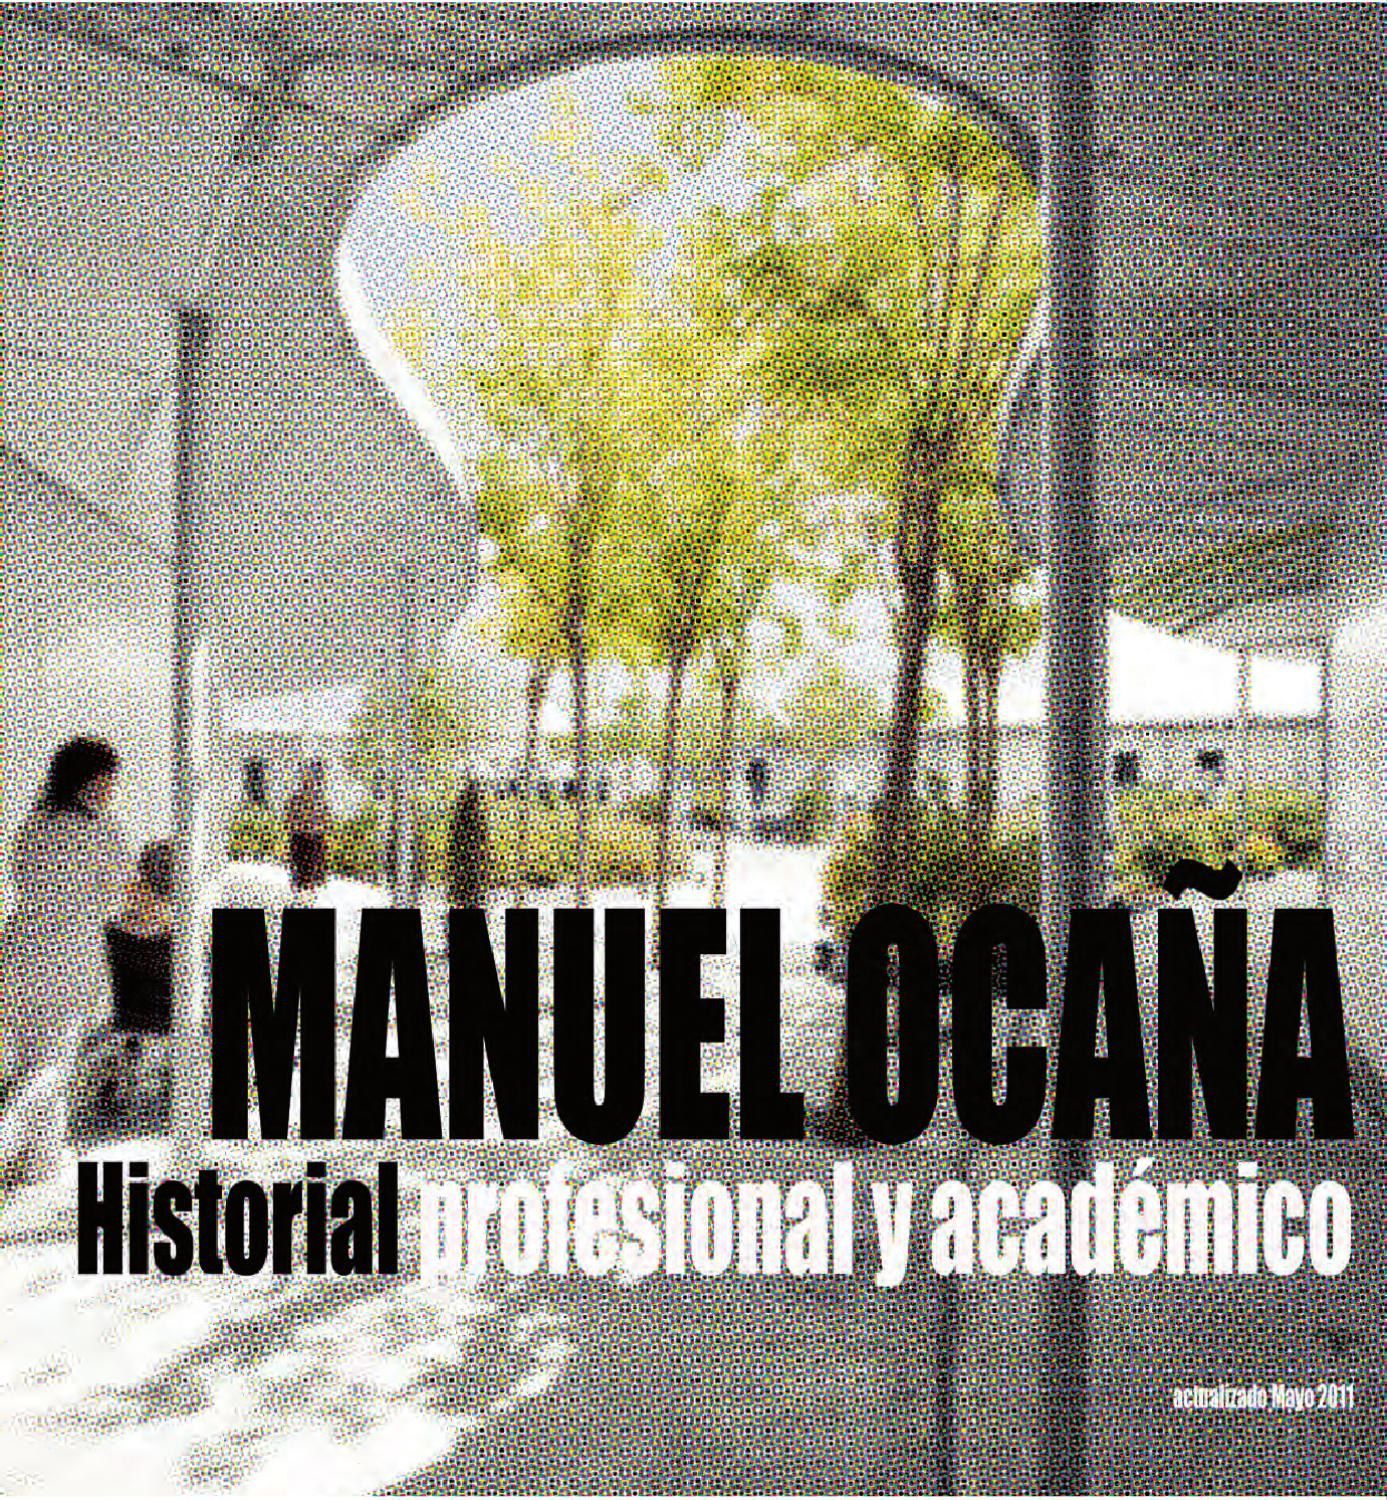 Manuel Oca A Academic And Professional Profile By Manuel Oca A  # Muebles Pozo Ocana